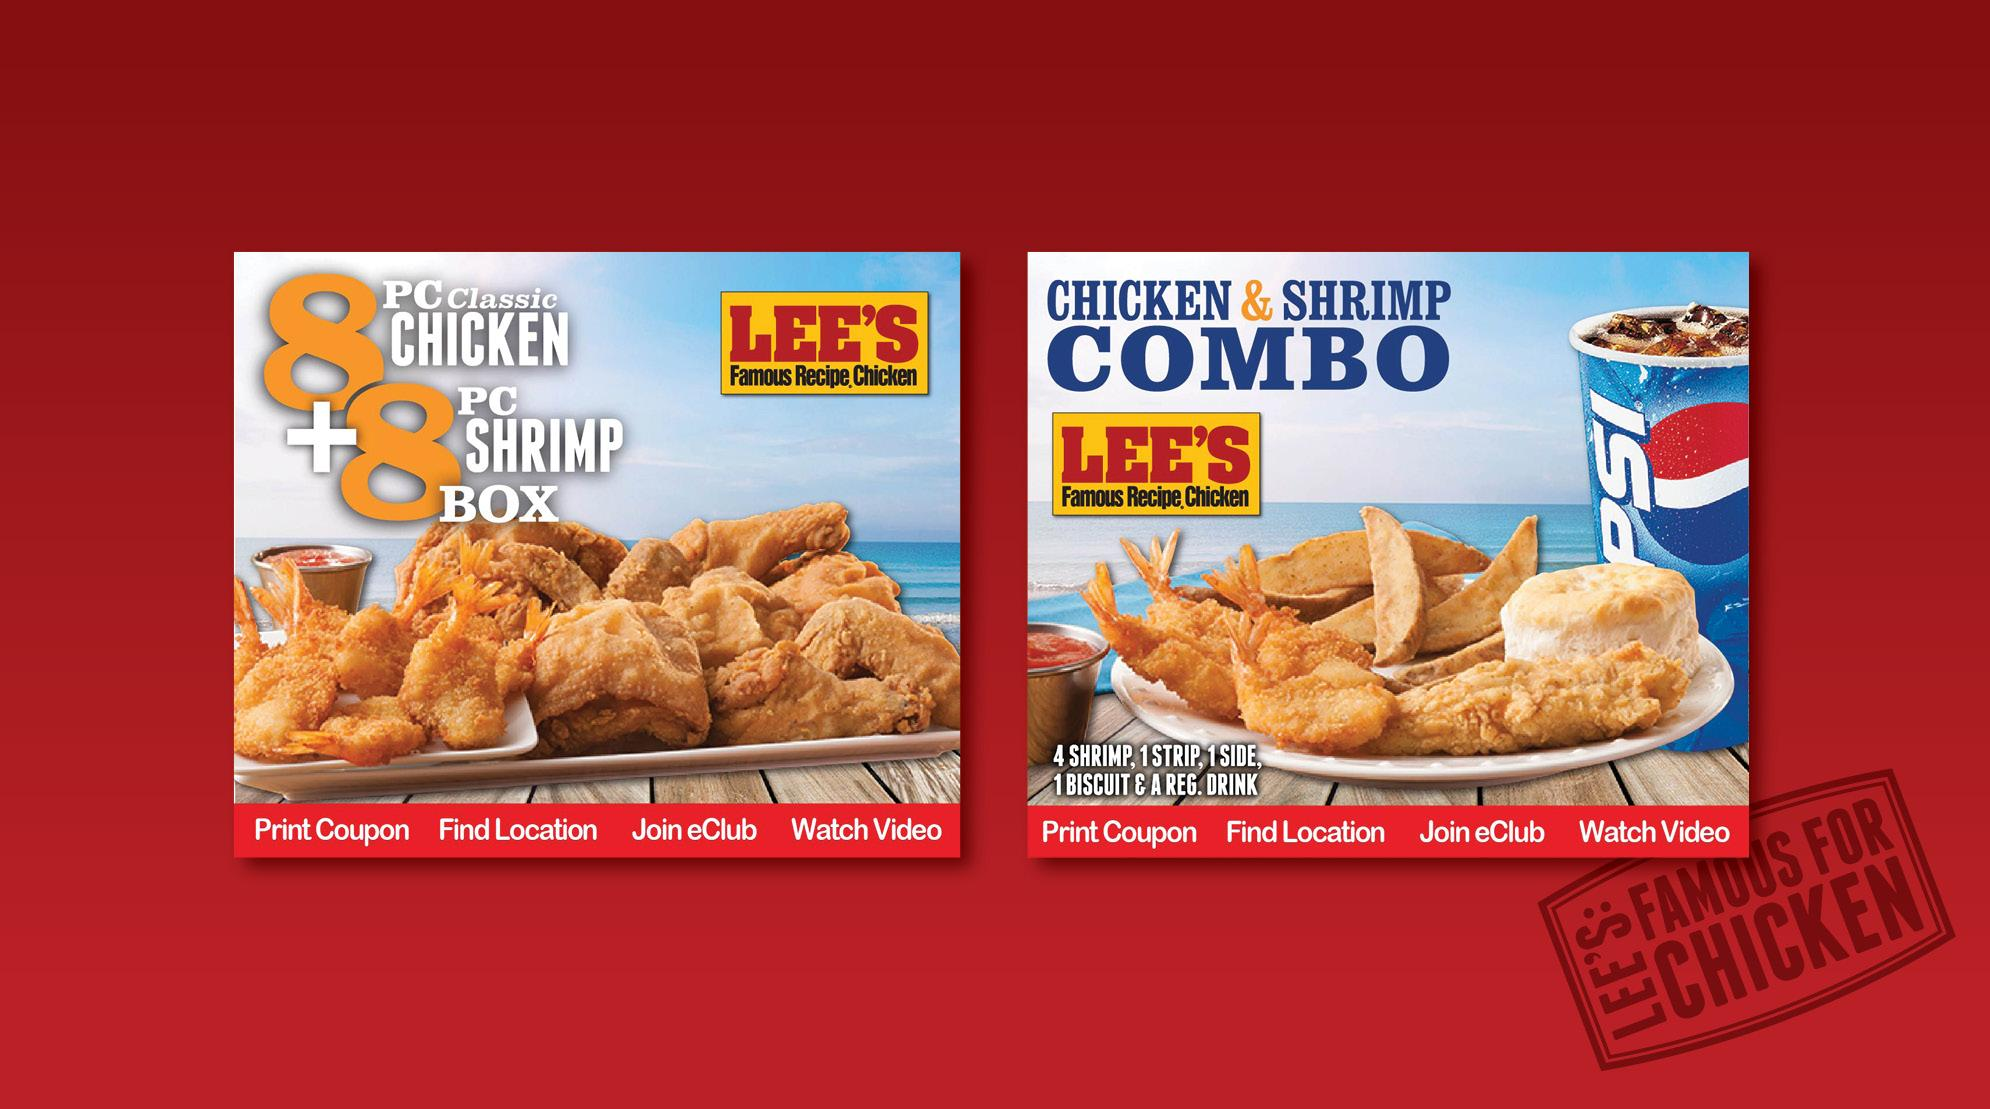 Lee's Famous Recipe Chicken Web Banners